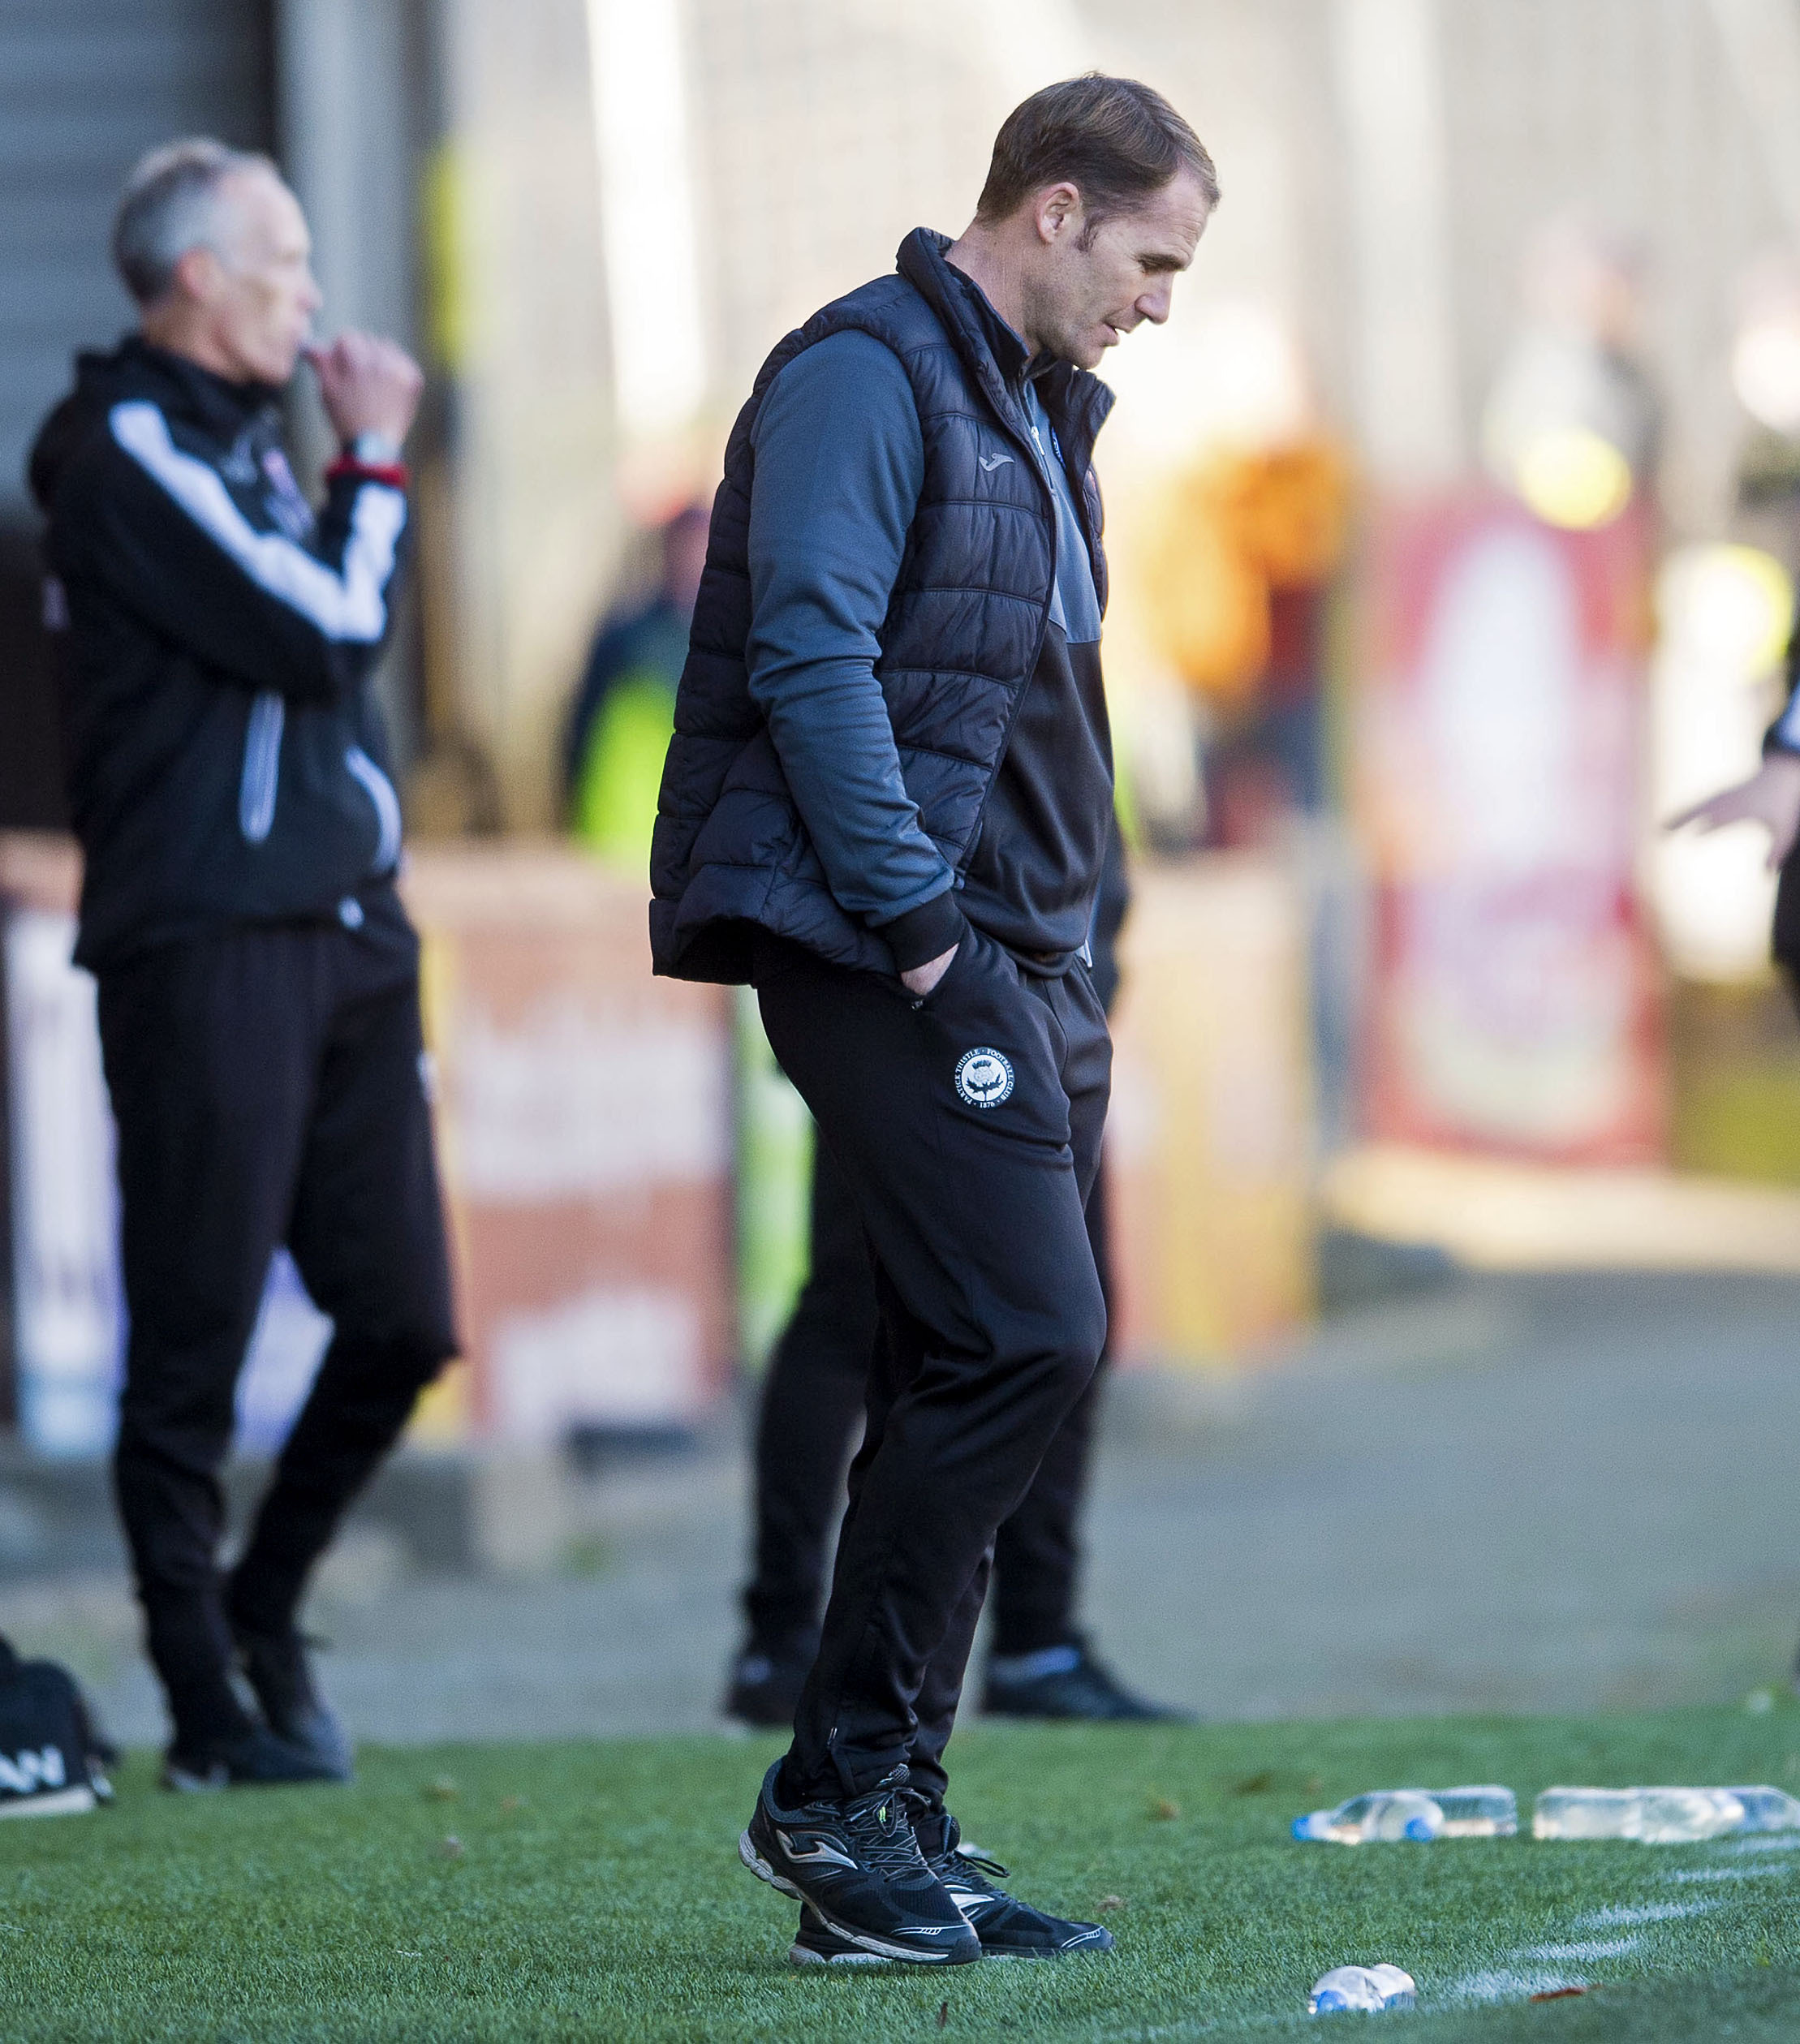 06/10/18 LADBROKES CHAMPIONSHIP PARTICK THISTLE V ROSS COUNTY (0-2) THE ENERGY CHECK STADIUM AT FIRHILL - GLASGOW Partick Thistle manager Alan Archibald looking dejected